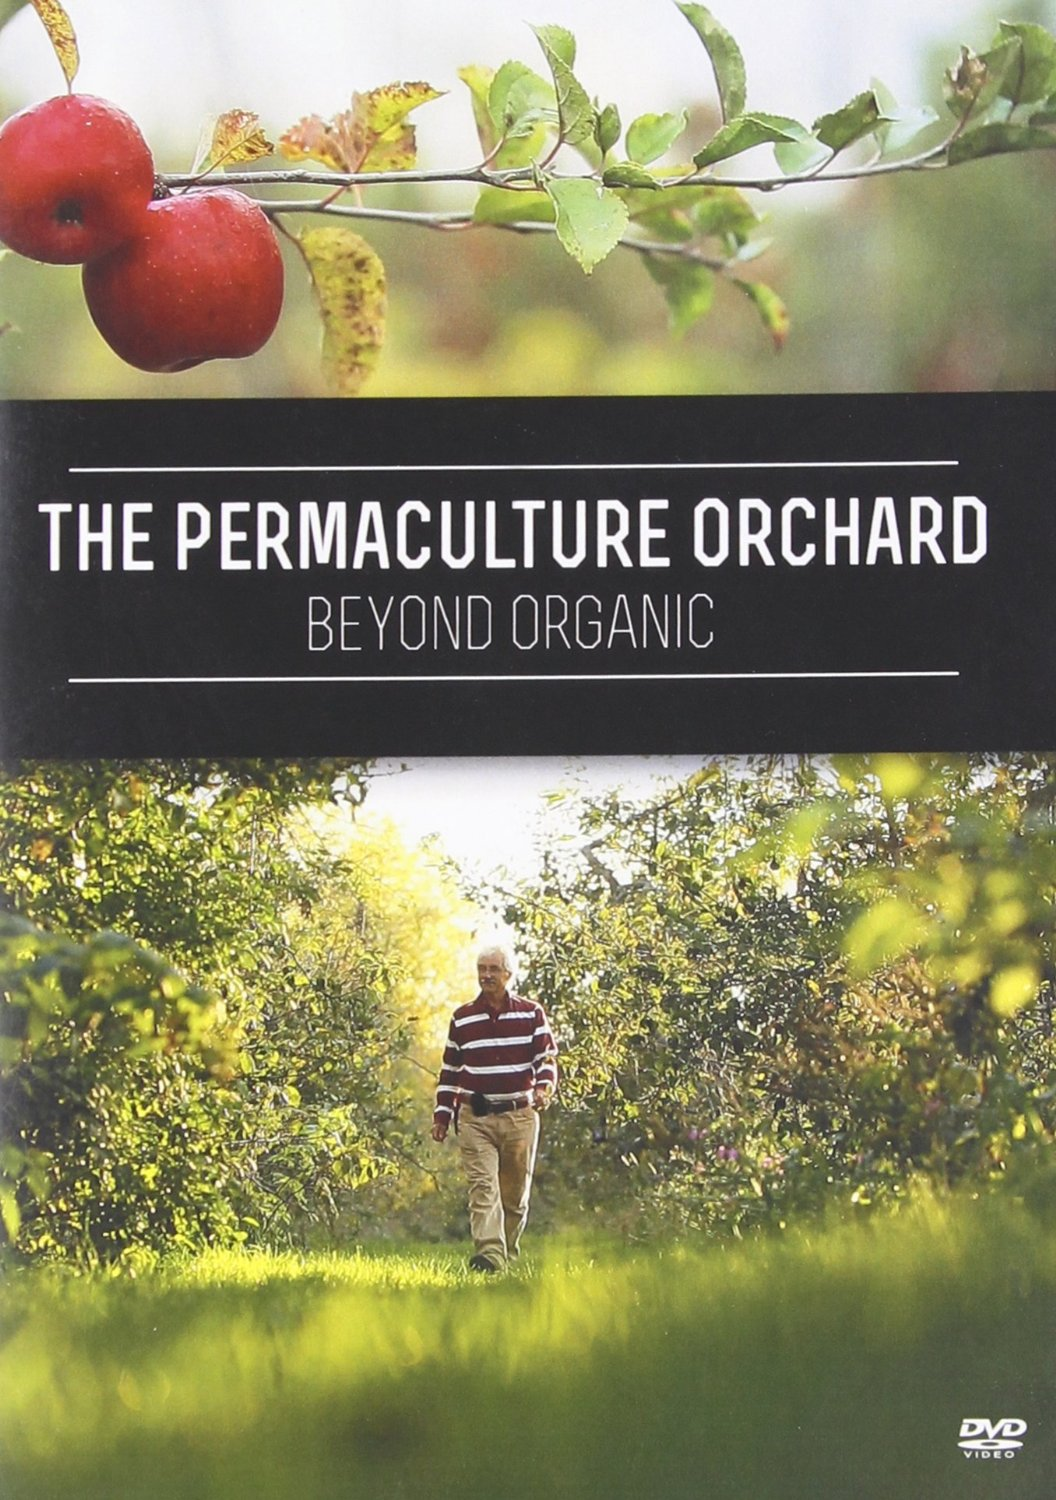 beyond the orchard Get this from a library beyond the orchard : essays on the martyrology [roy miki fred wah.